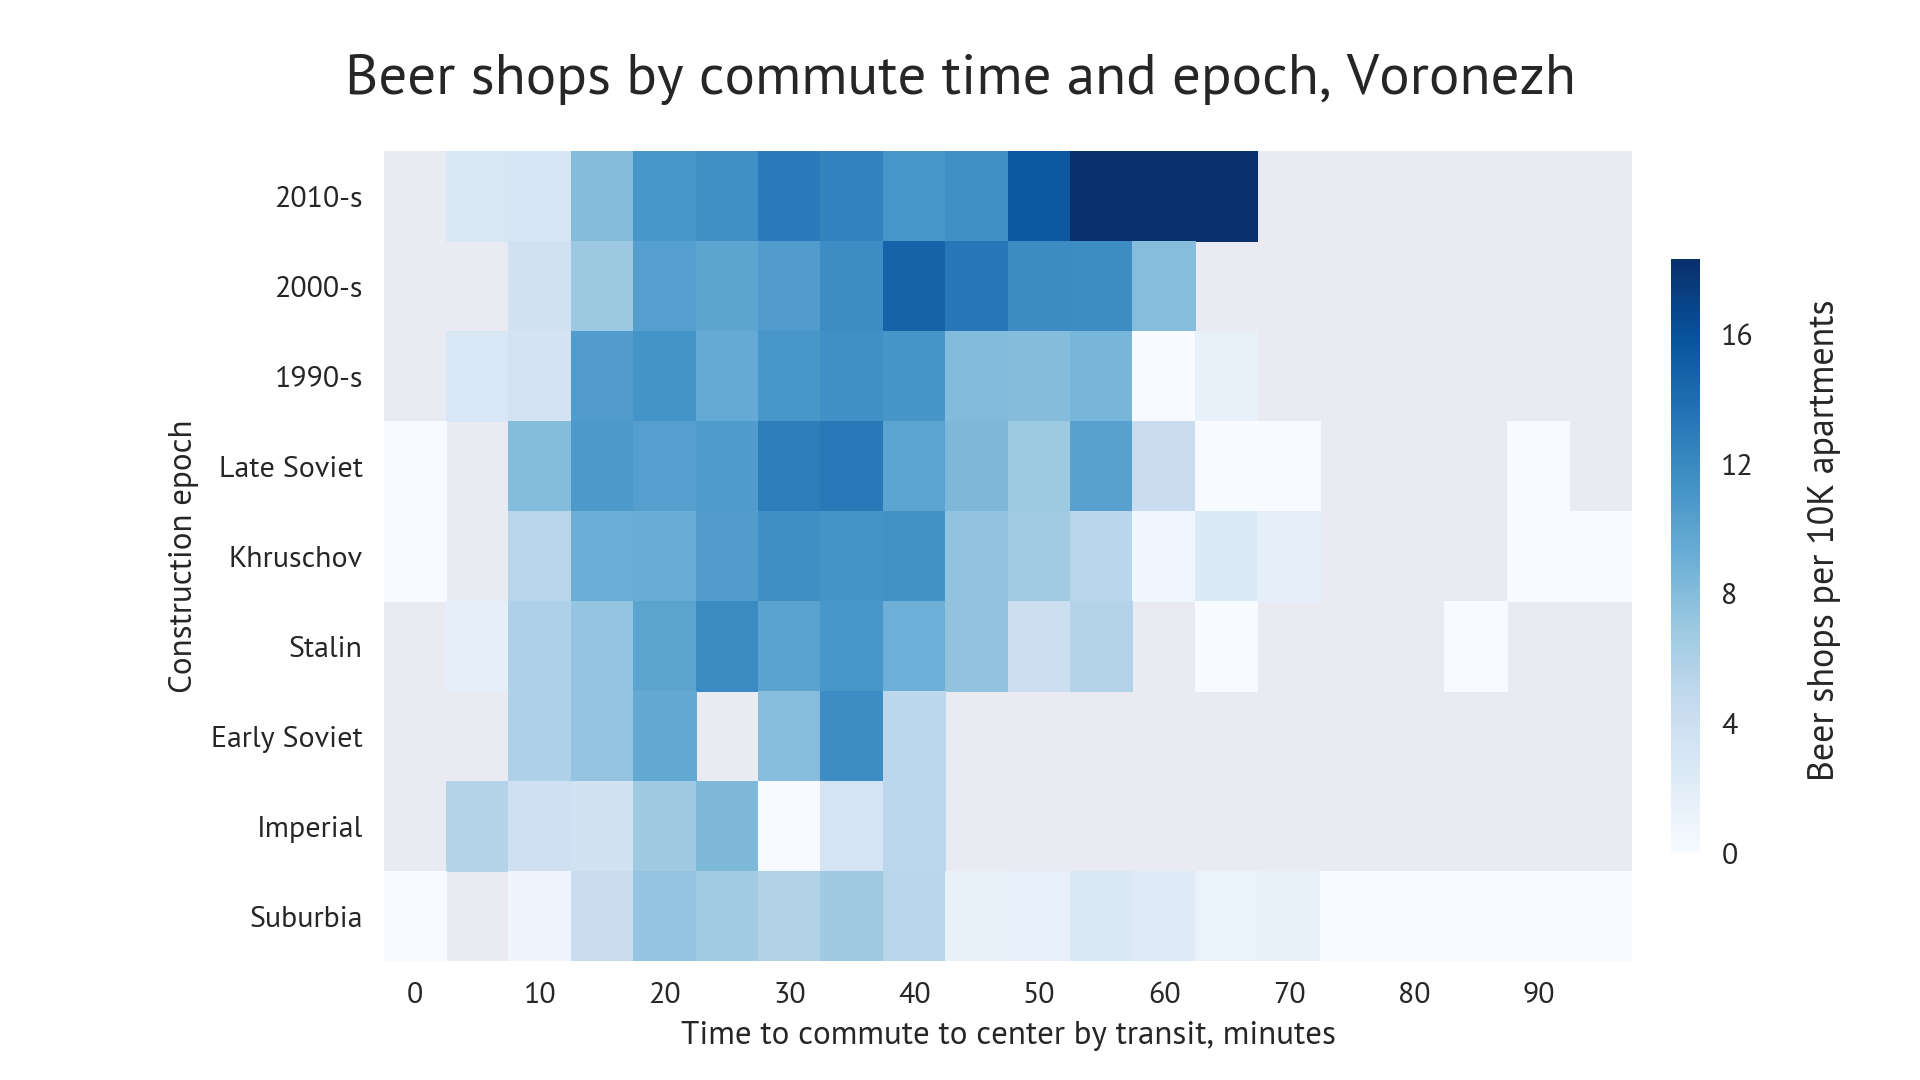 Chart: Beershops diffusion by commute time and construction epoch. Voronezh